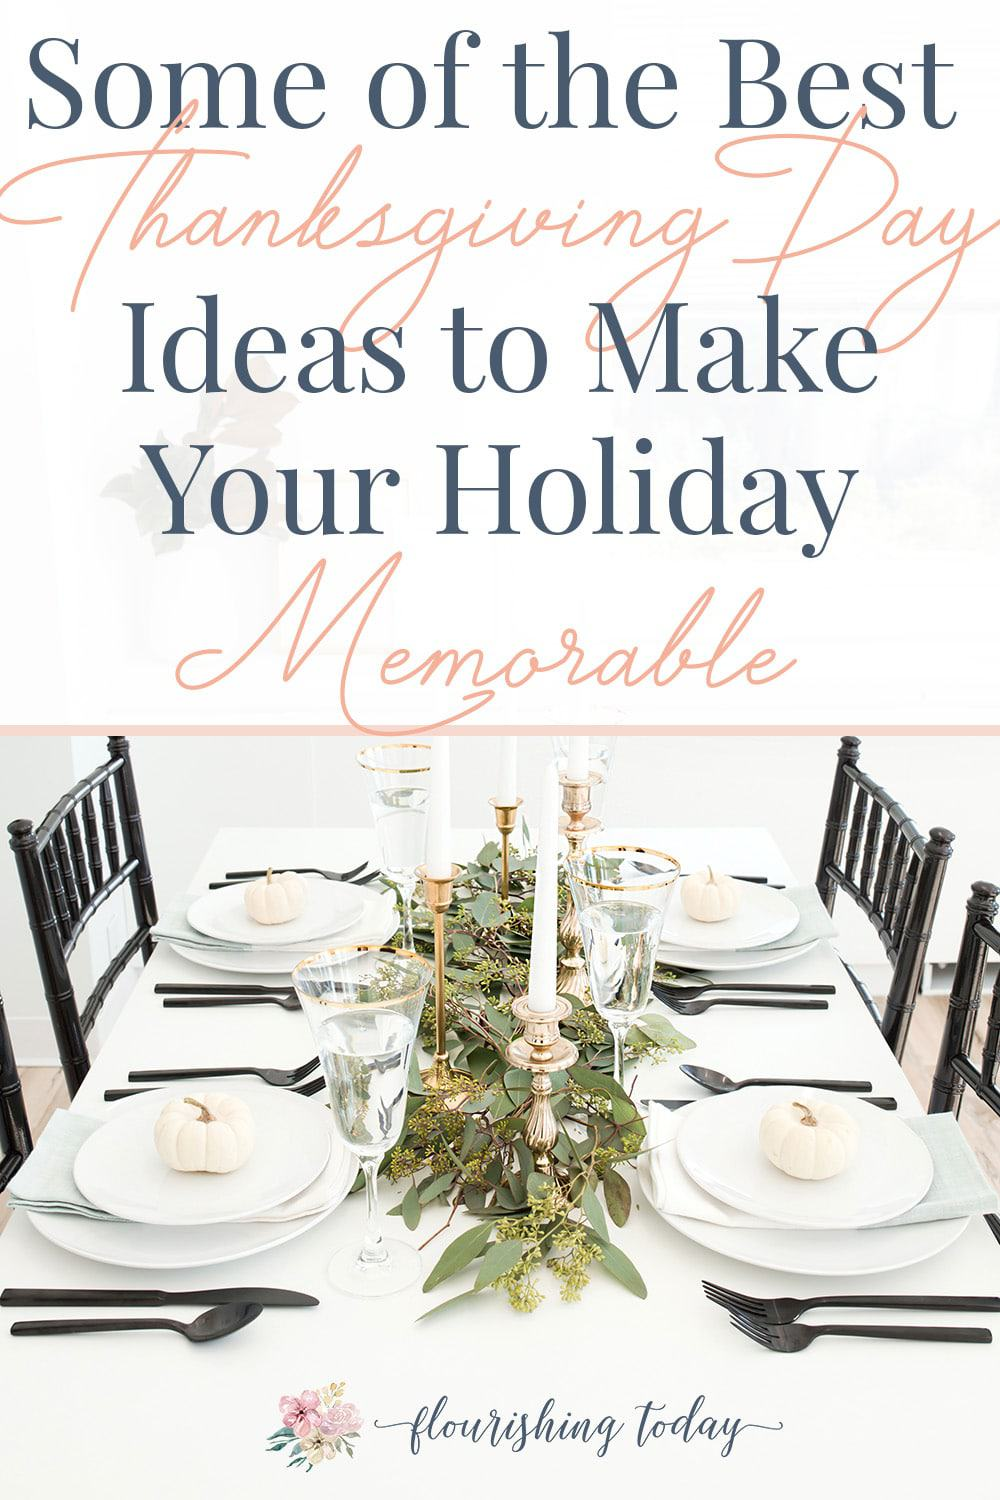 Are you searching for ideas to make your holiday memorable? Here are 10 of the best Thanksgiving Day ideas to give your family a wonderful memories! #thanksgivingday #memorableholidays #thanksgiving #gratitude